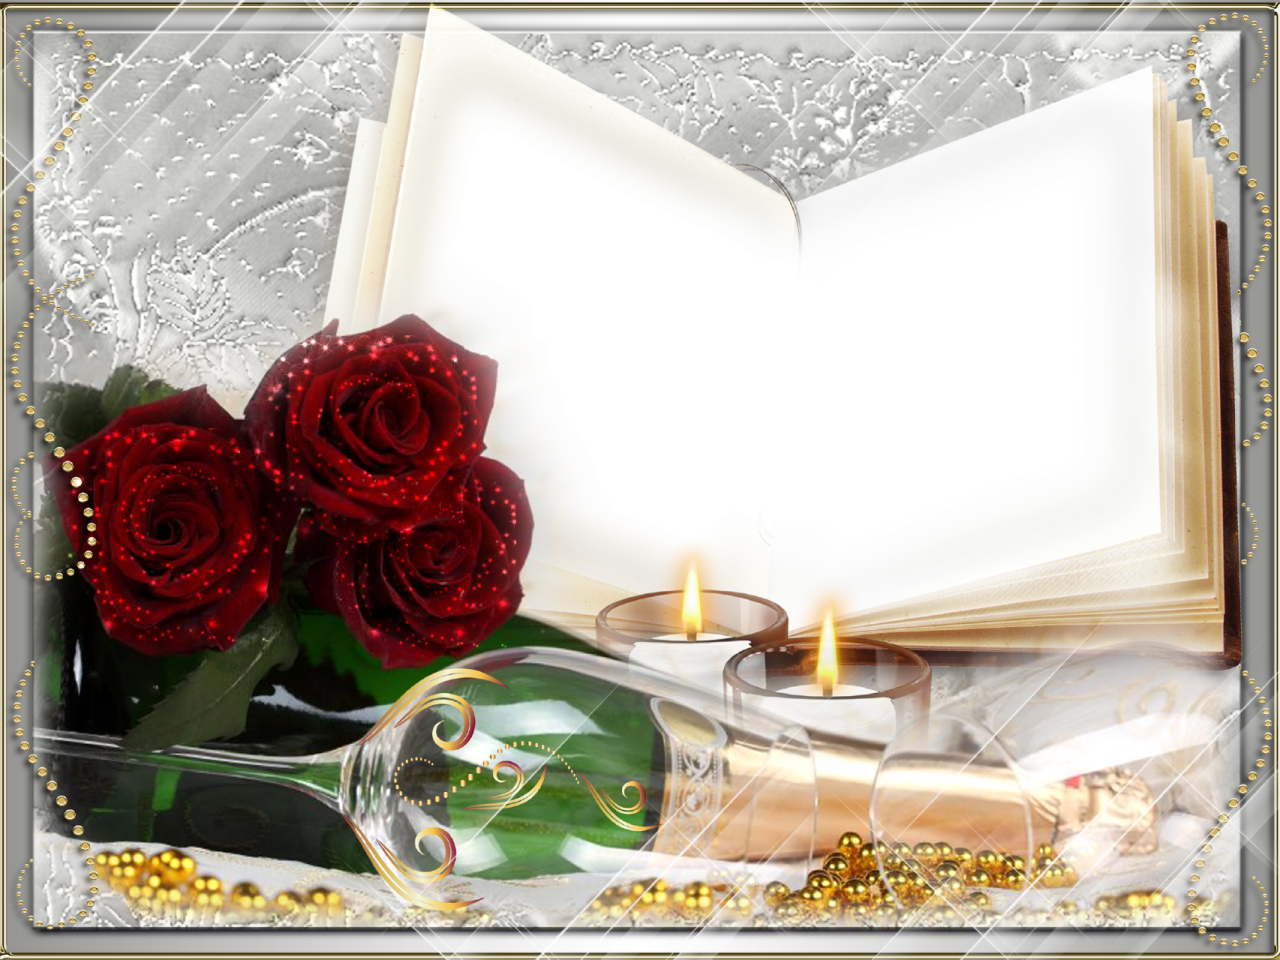 Romantic Love Frame Background Png image #27884